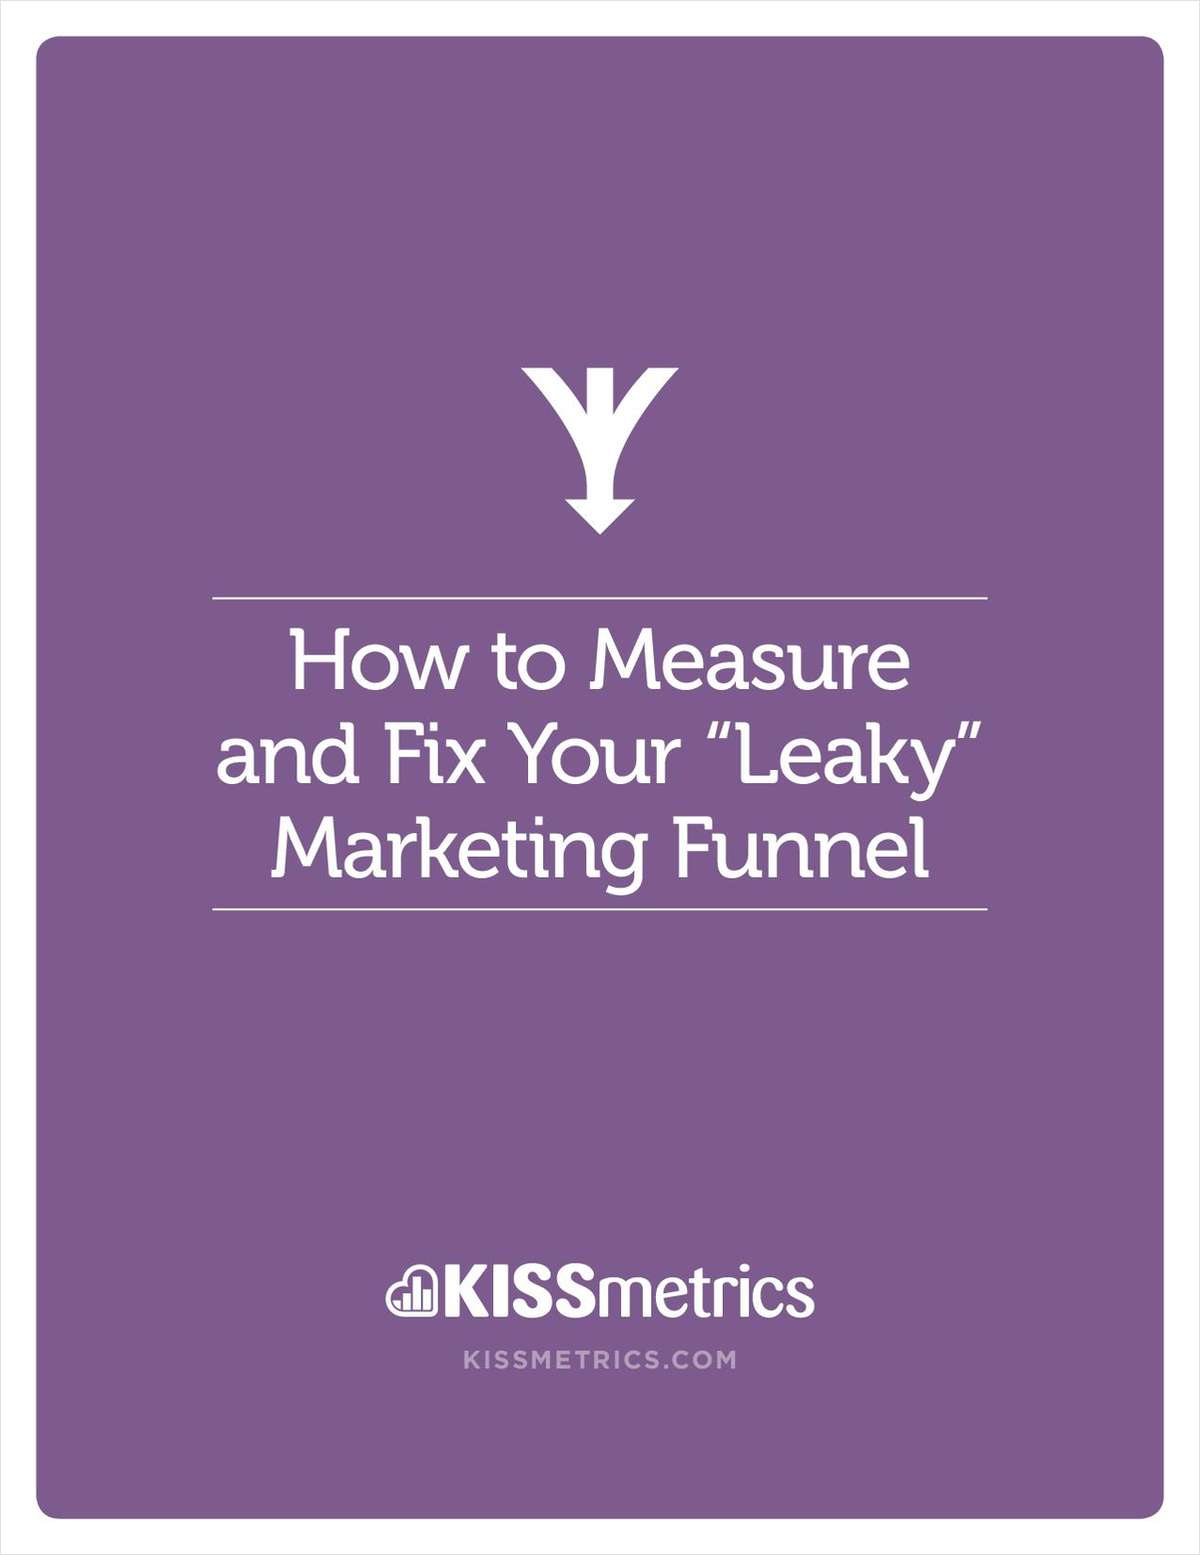 How to Measure and Fix Your 'Leaky' Marketing Funnel